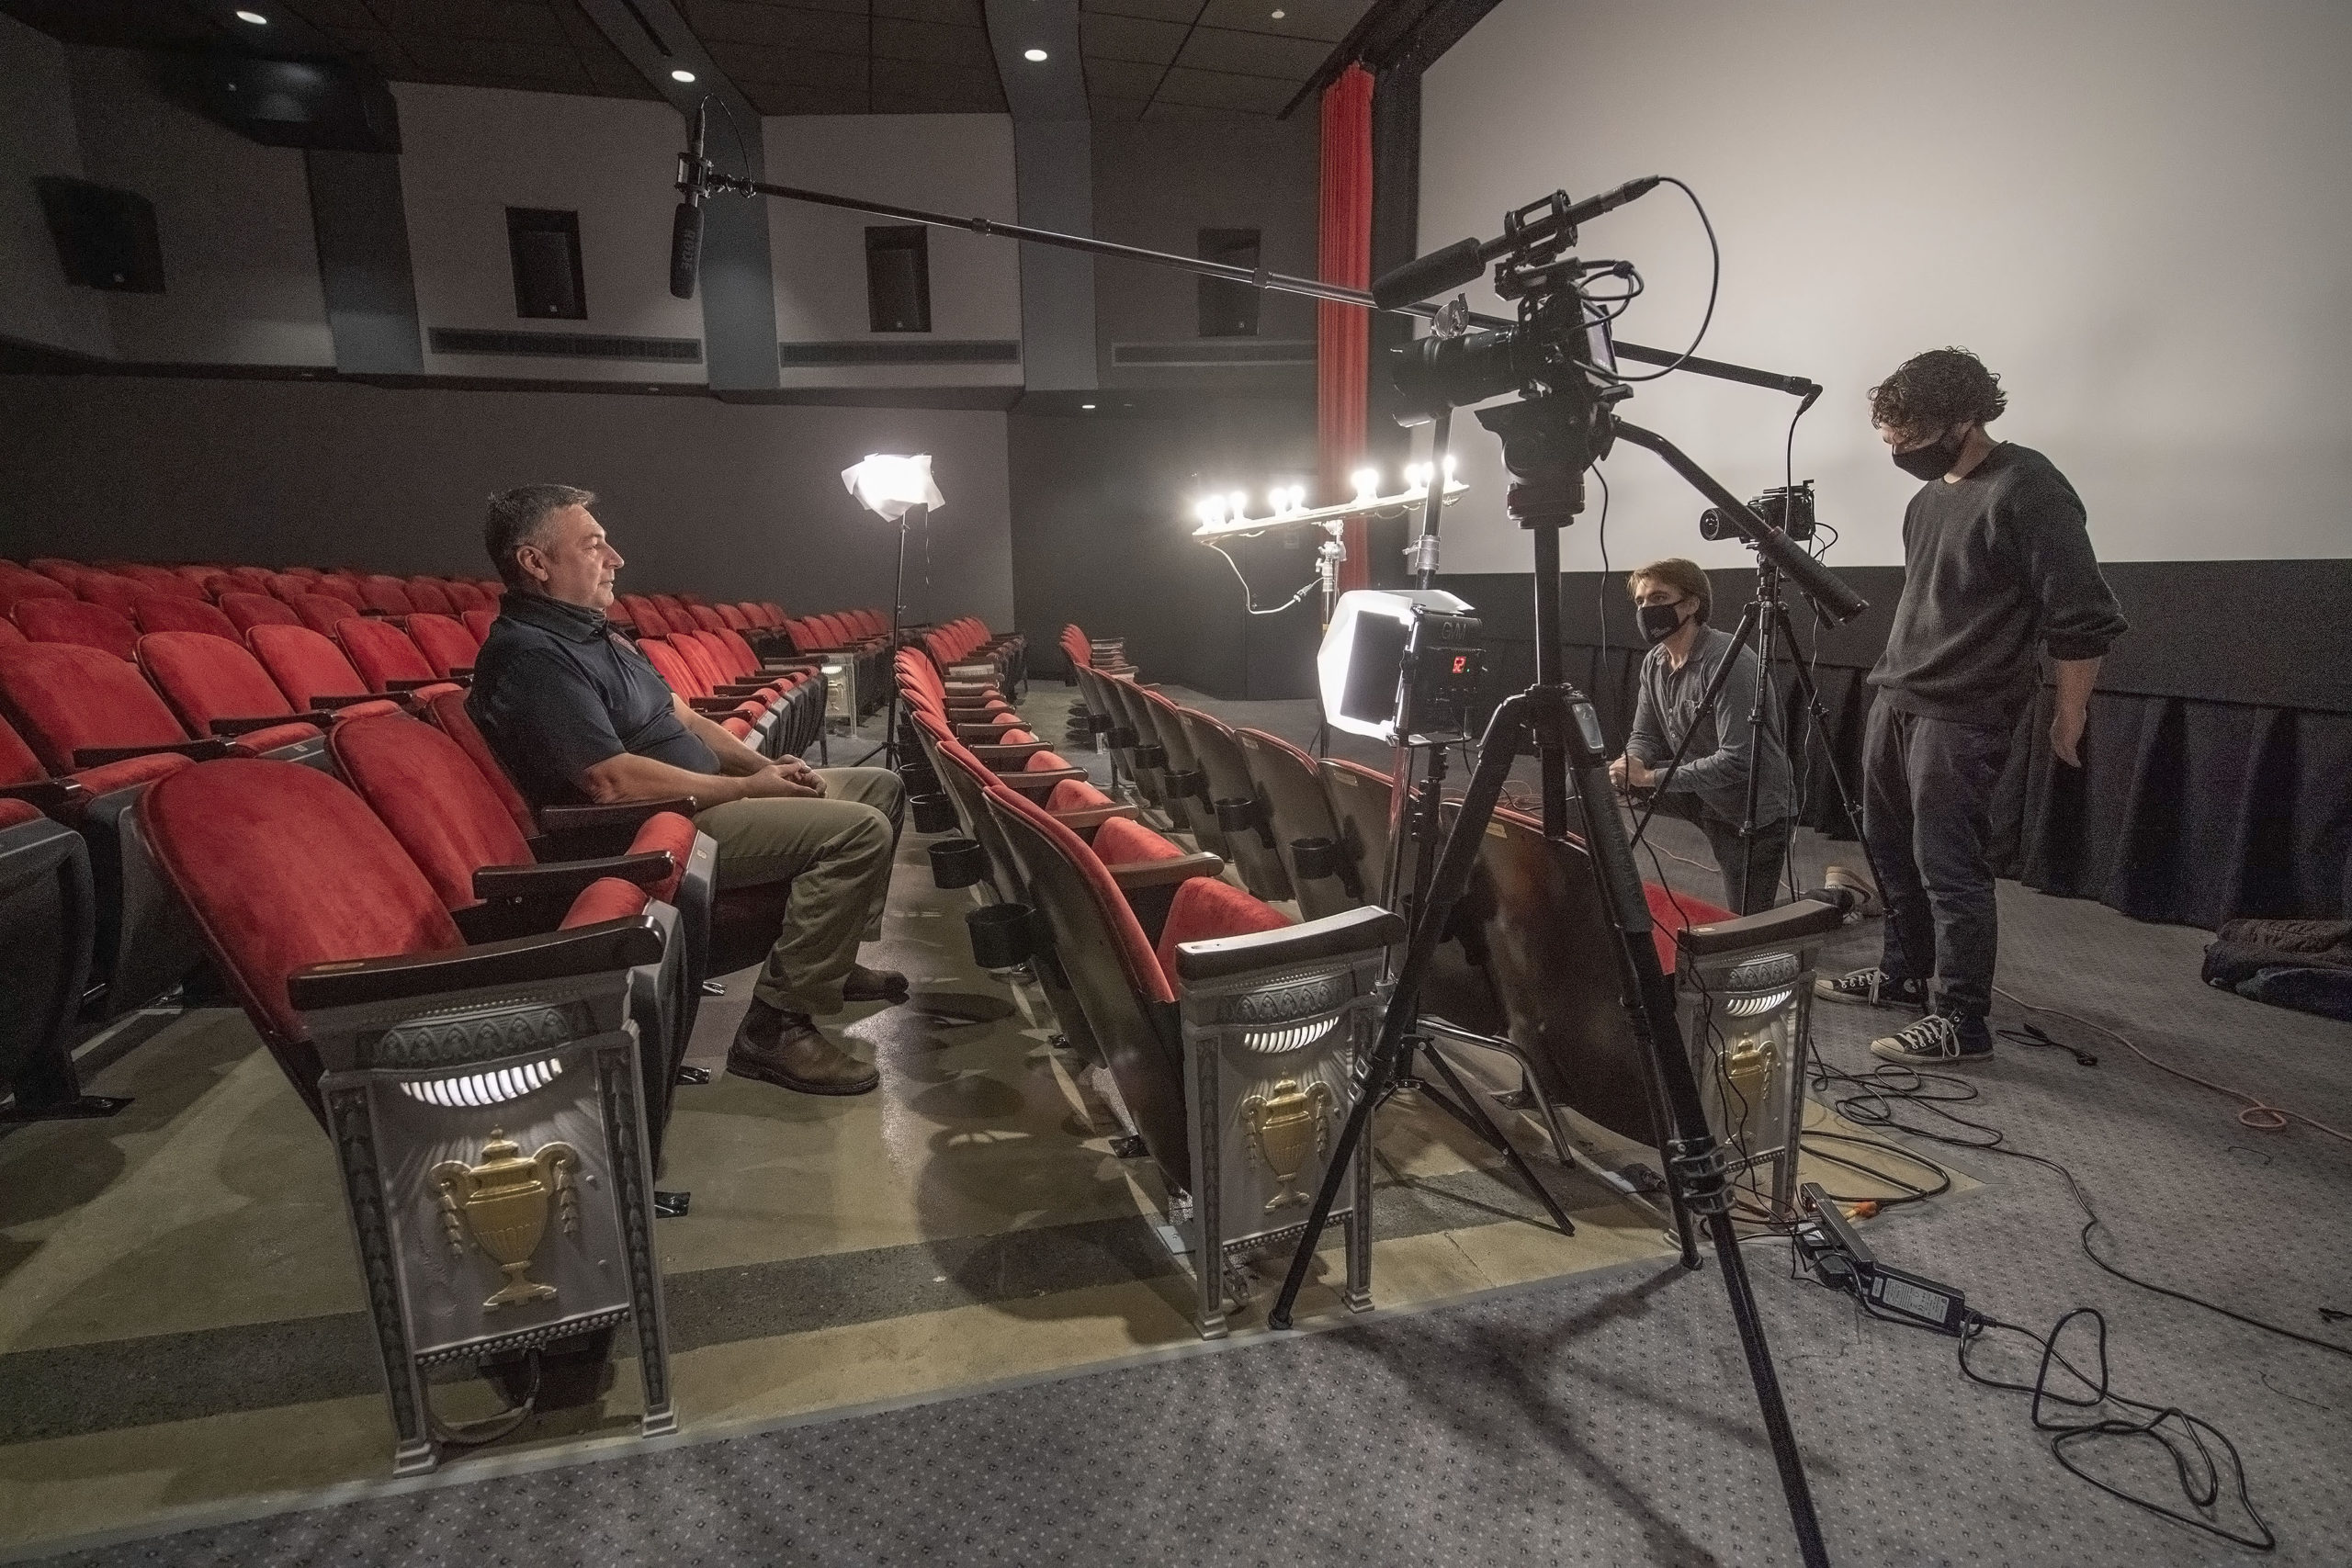 Sam Hamilton, son of Emma Walton and Steve Hamilton, conducted a series of video interviews of past and present chiefs of the Sag Harbor Fire Department inside the newly-completed Sag Harbor Cinema on Sunday, November 22, about their experiences fighting the fire at the cinema four years ago, with the goal of producing a short video honoring fire department members.